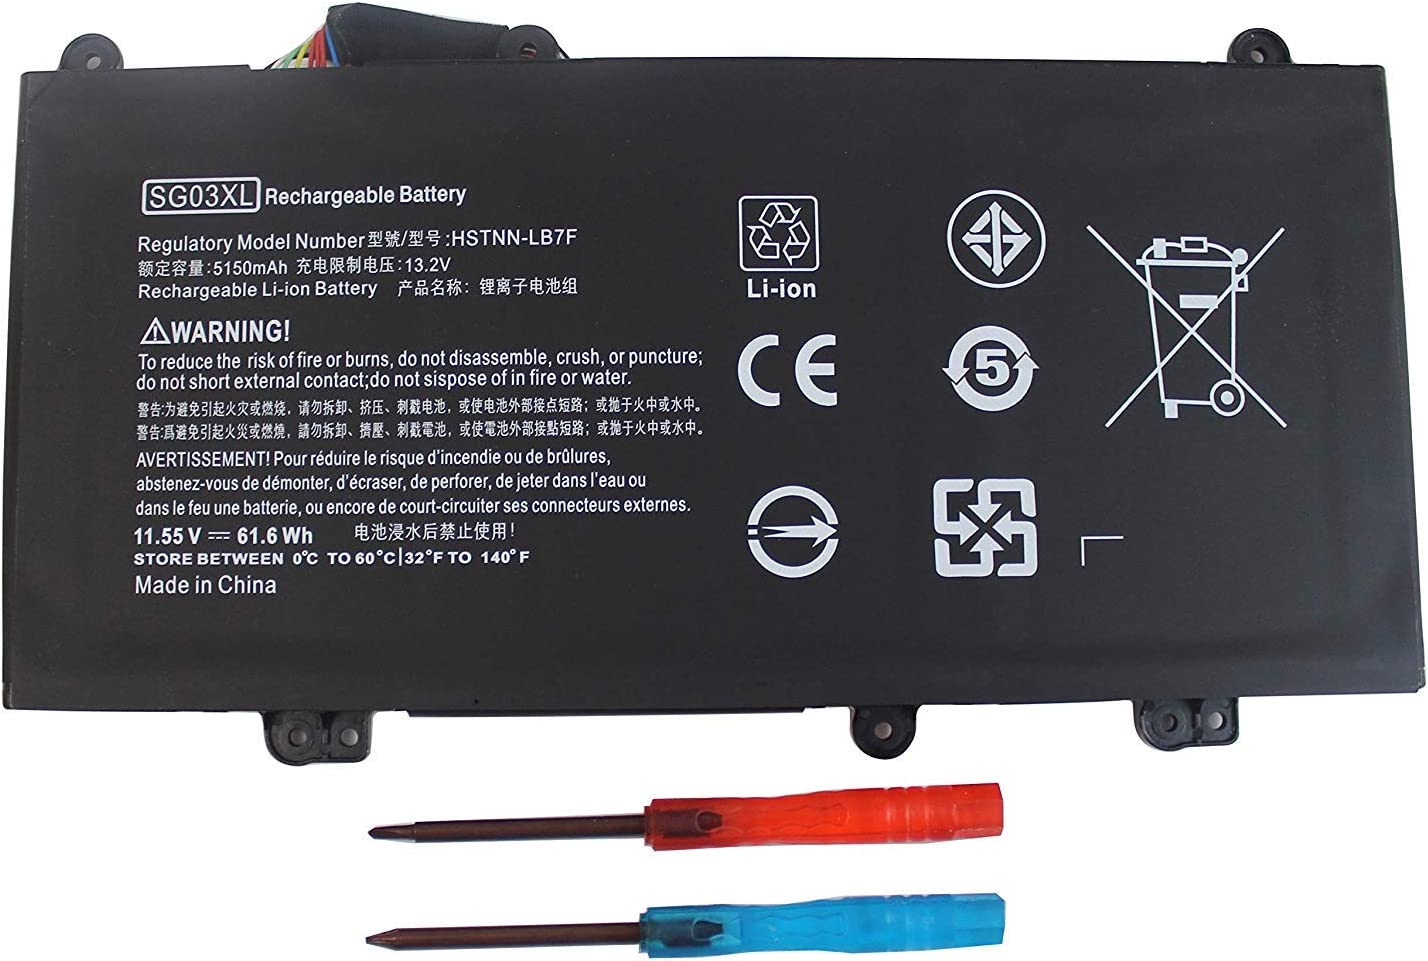 LNOCCIY SG03XL Laptop Battery for HP Envy M7-U M7-u009dx M7-u109dx 17t-U000 17-u011nr 17-u110nr 17-u163cl 17-u177cl Series 849314-850 849315-850 HSTNN-LB7F HSTNN-LB7E TPN-I126